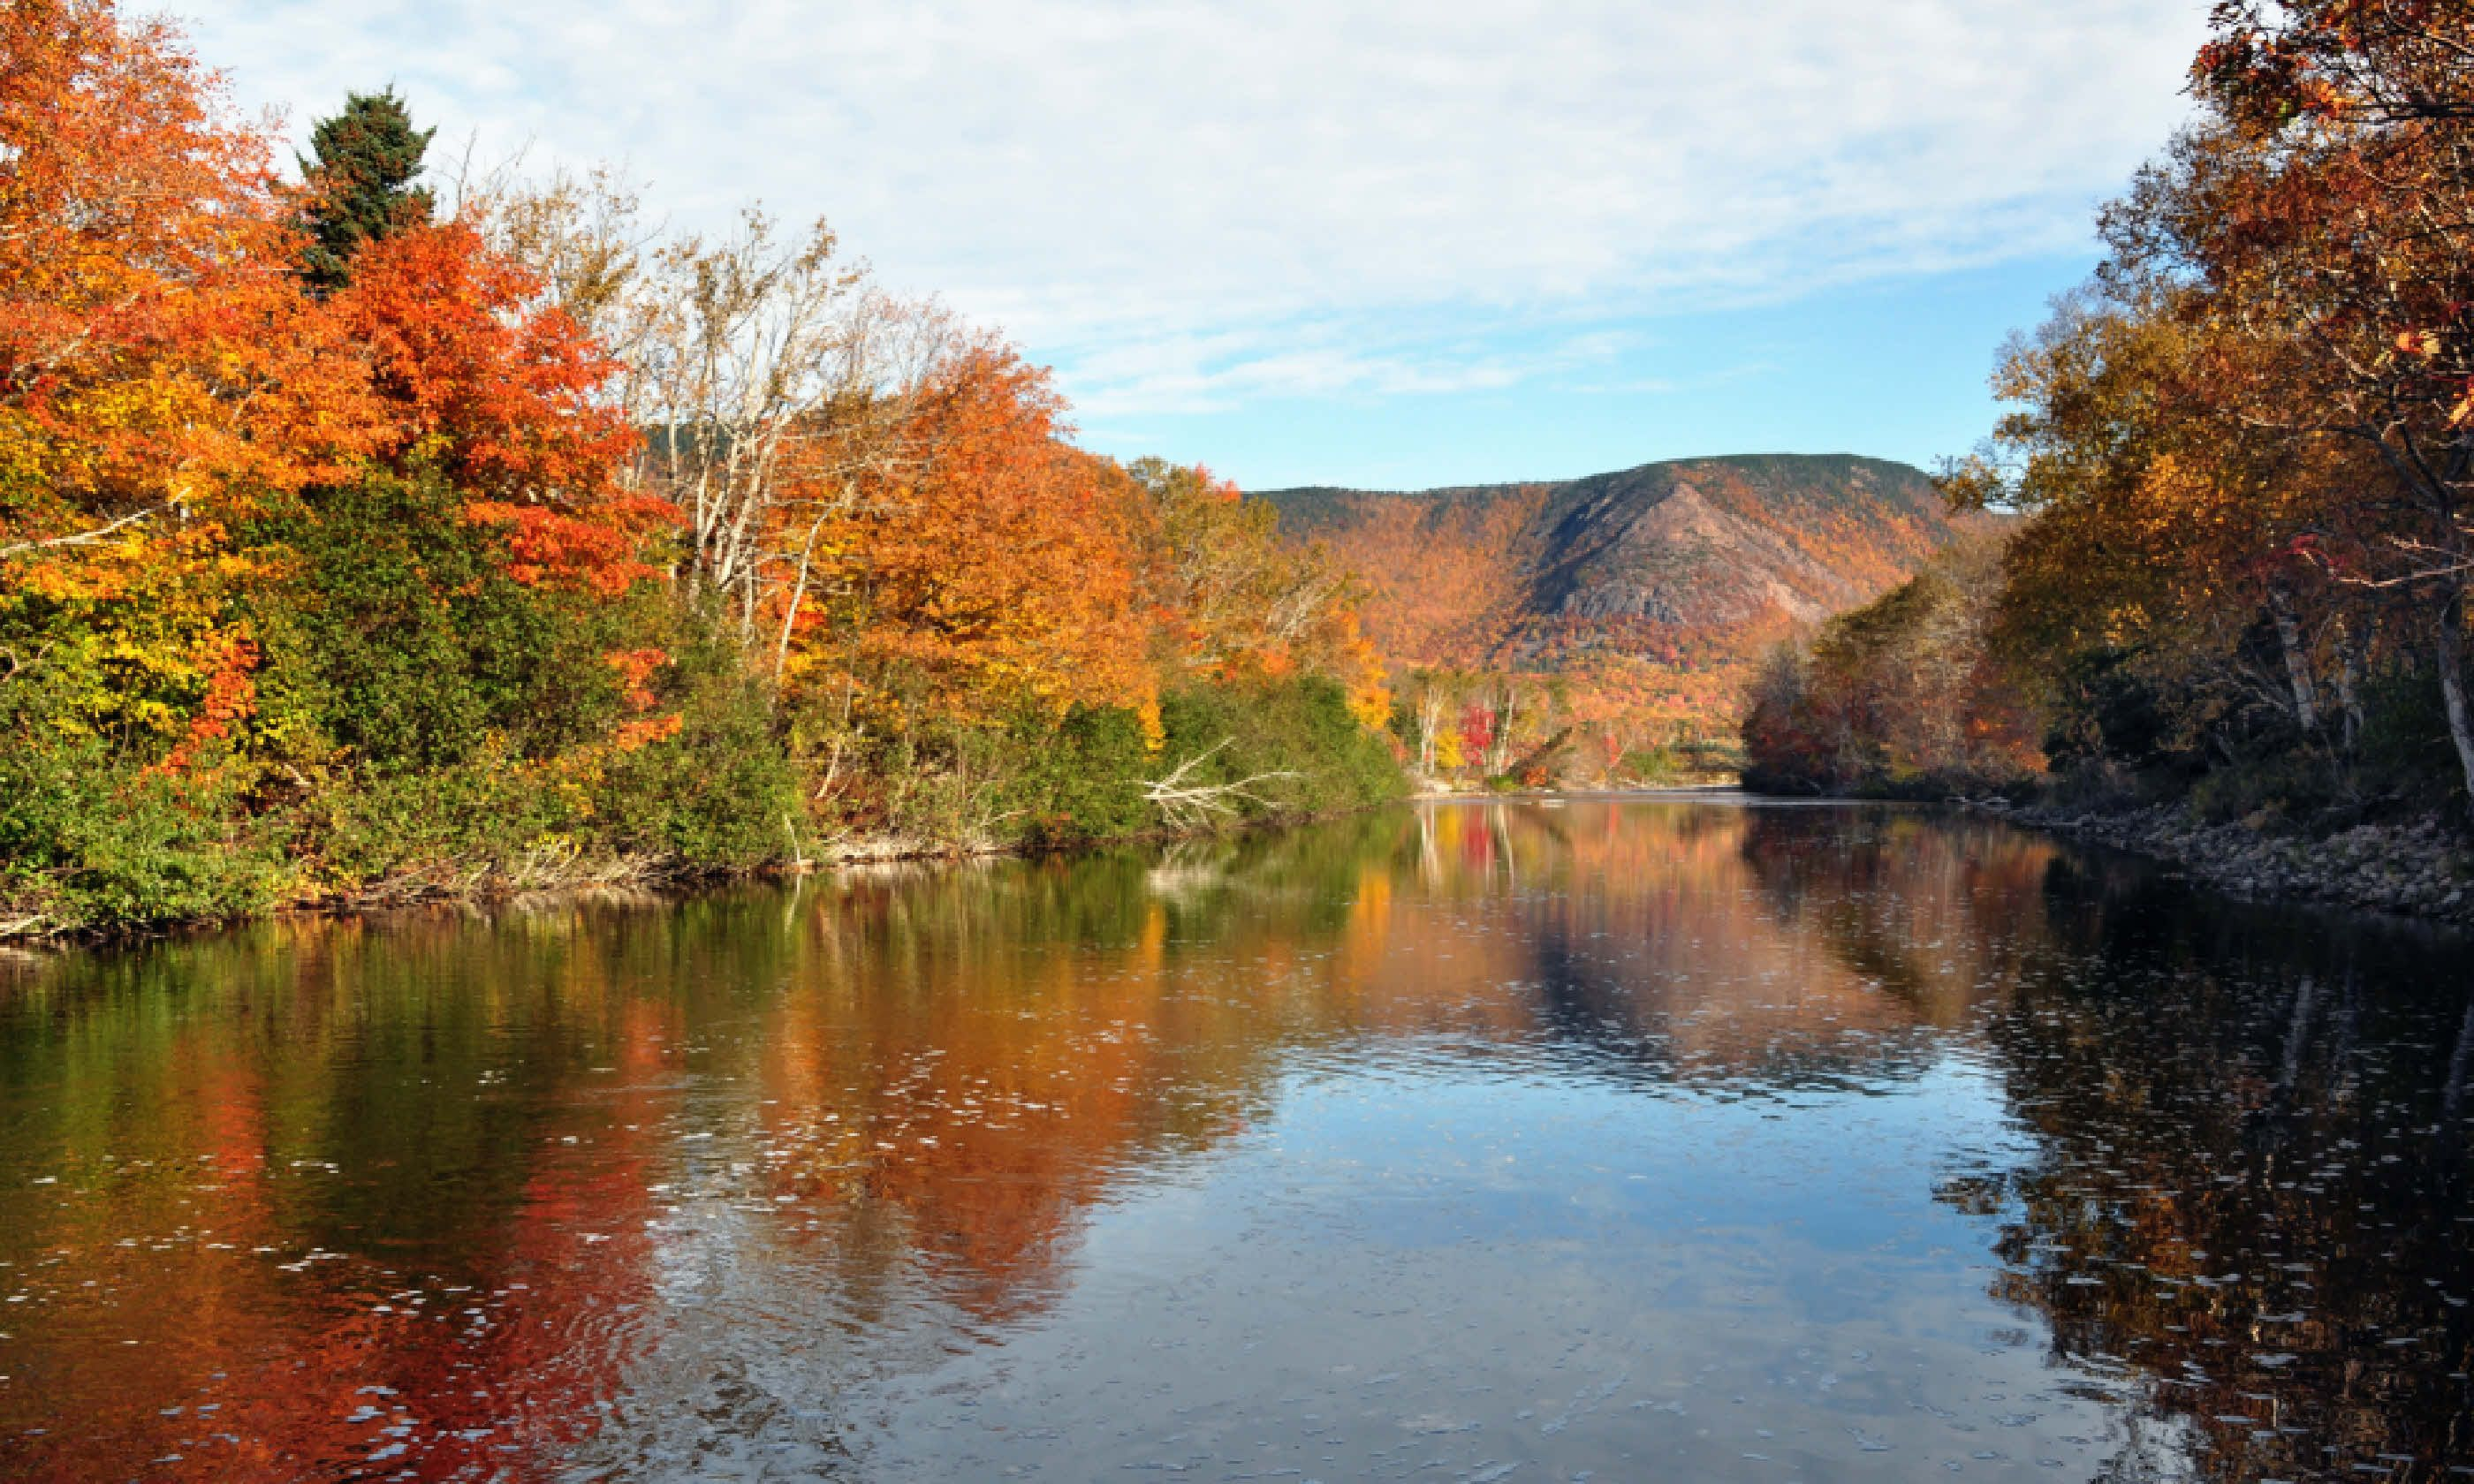 The North Aspy River in Cape Breton, Nova Scotia (Shutterstock)